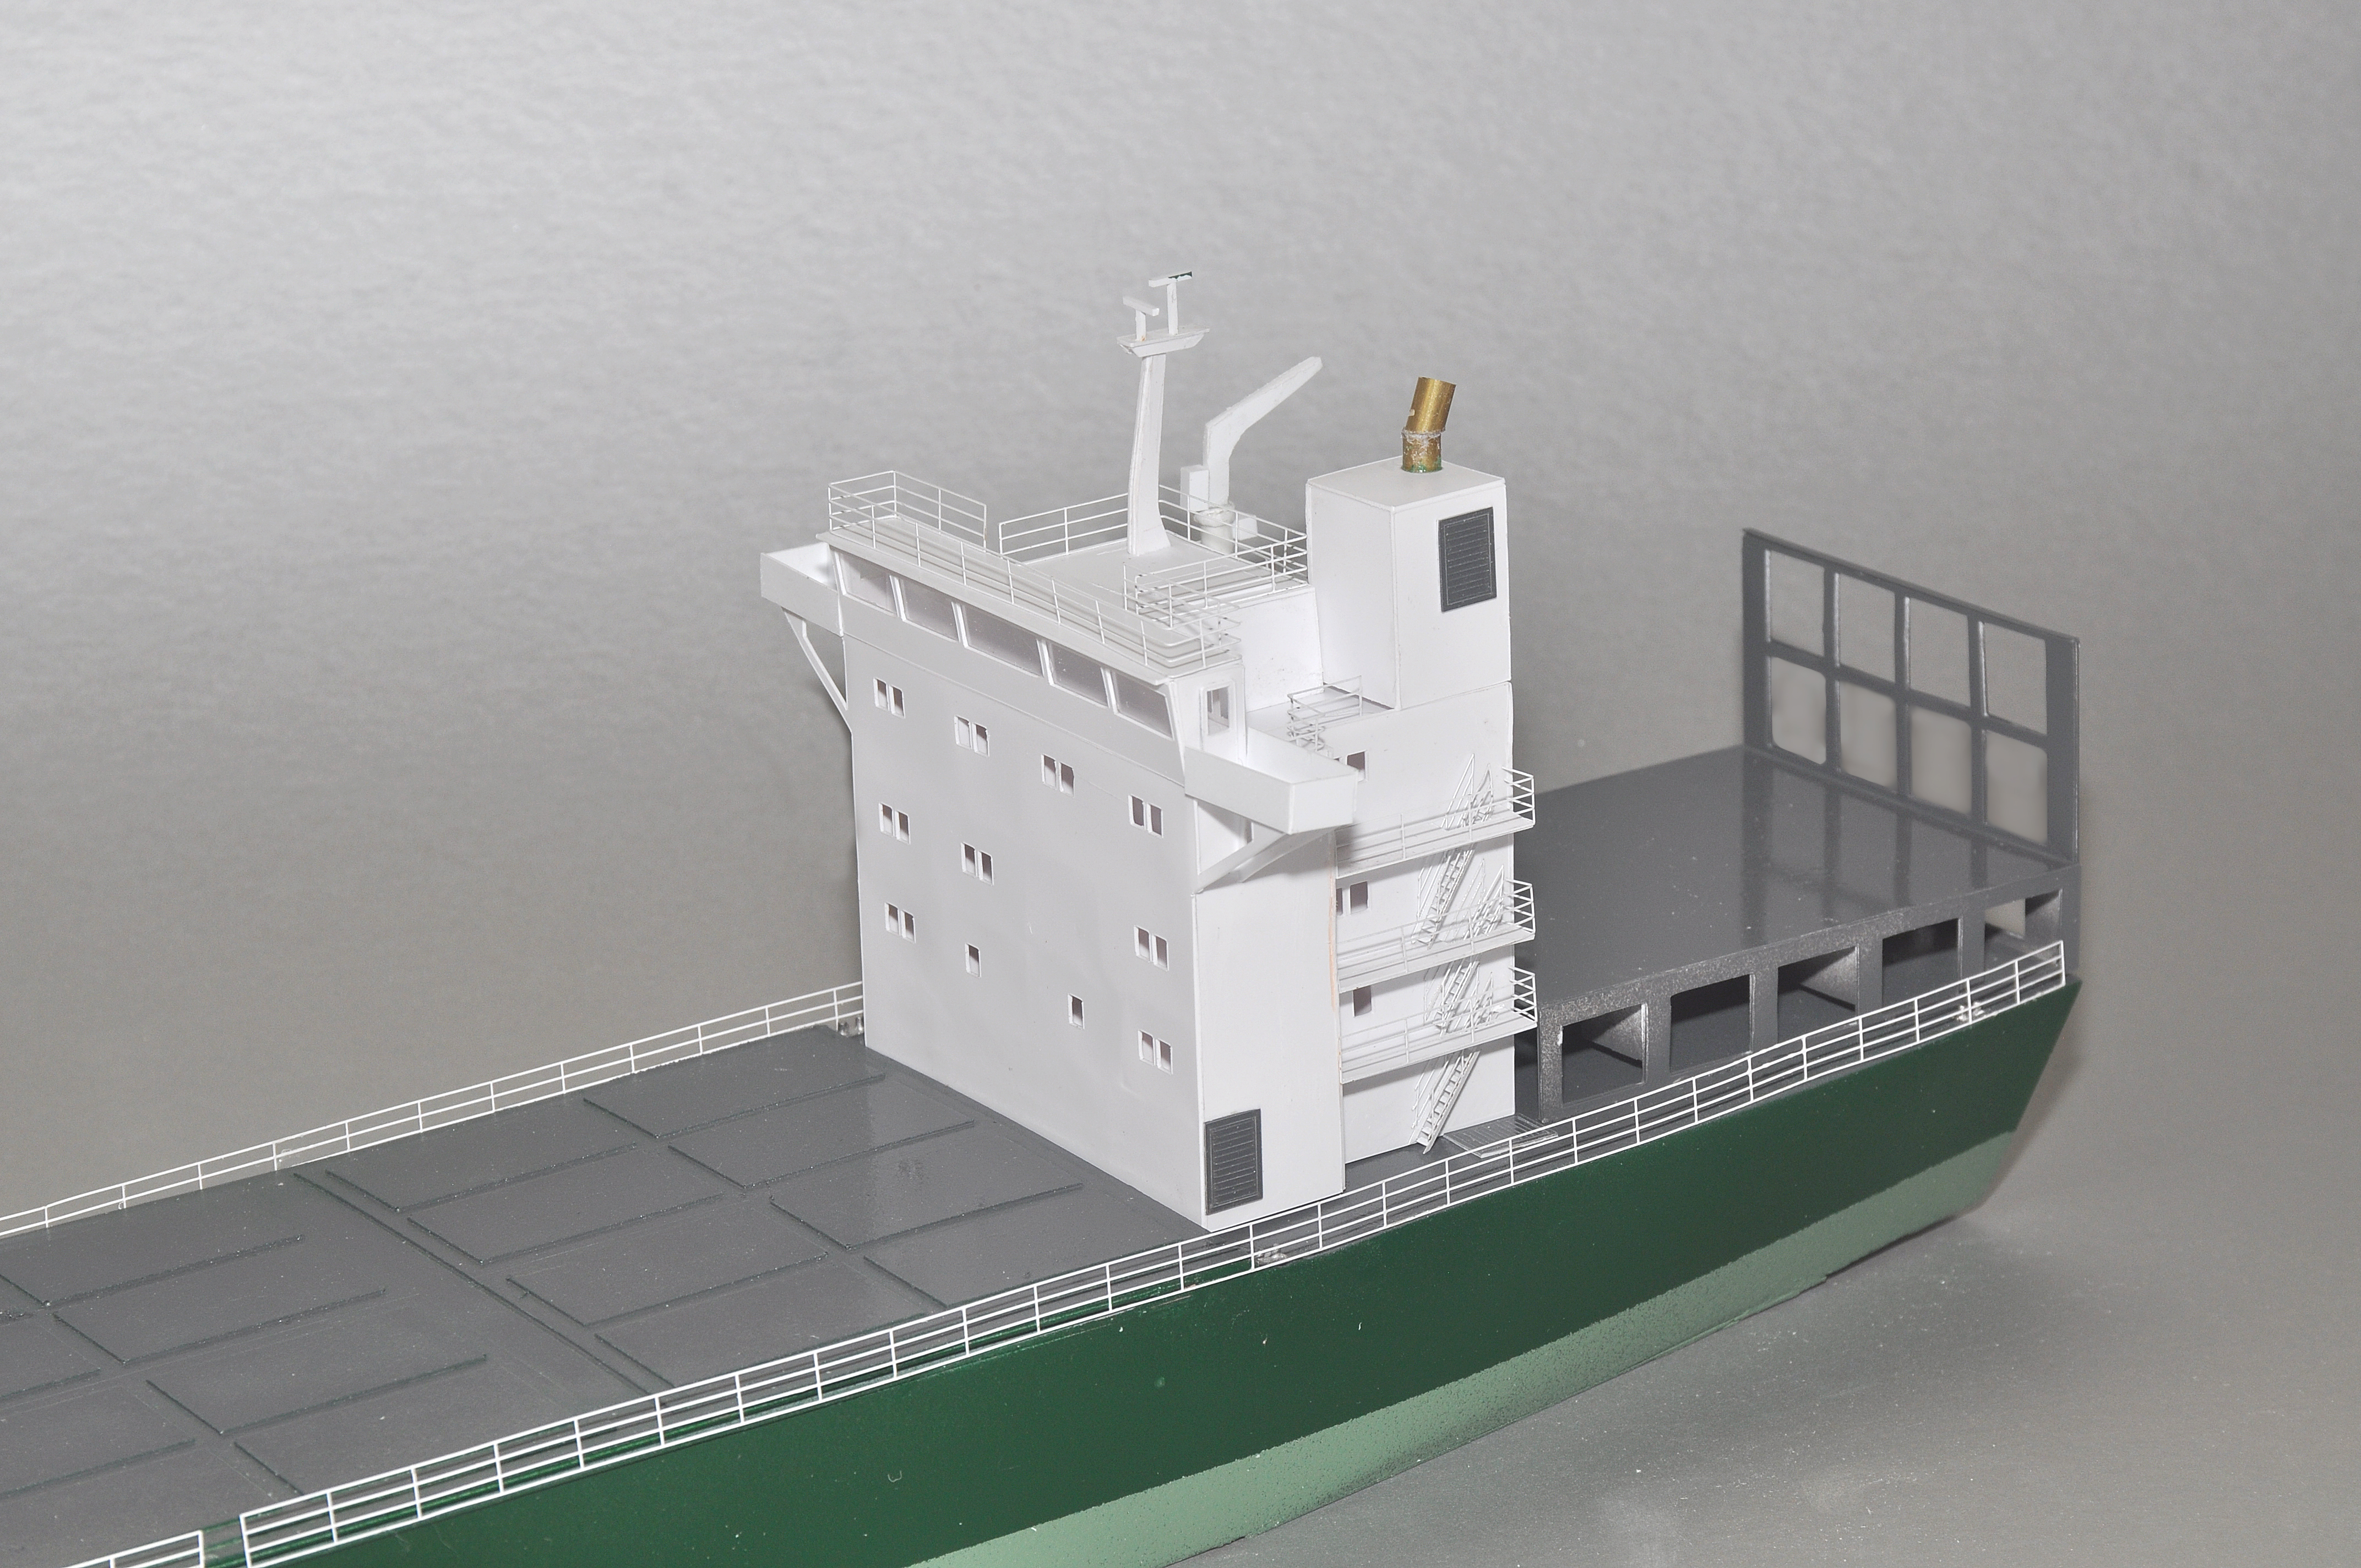 487 First Generation Container Ship N Scale Ships